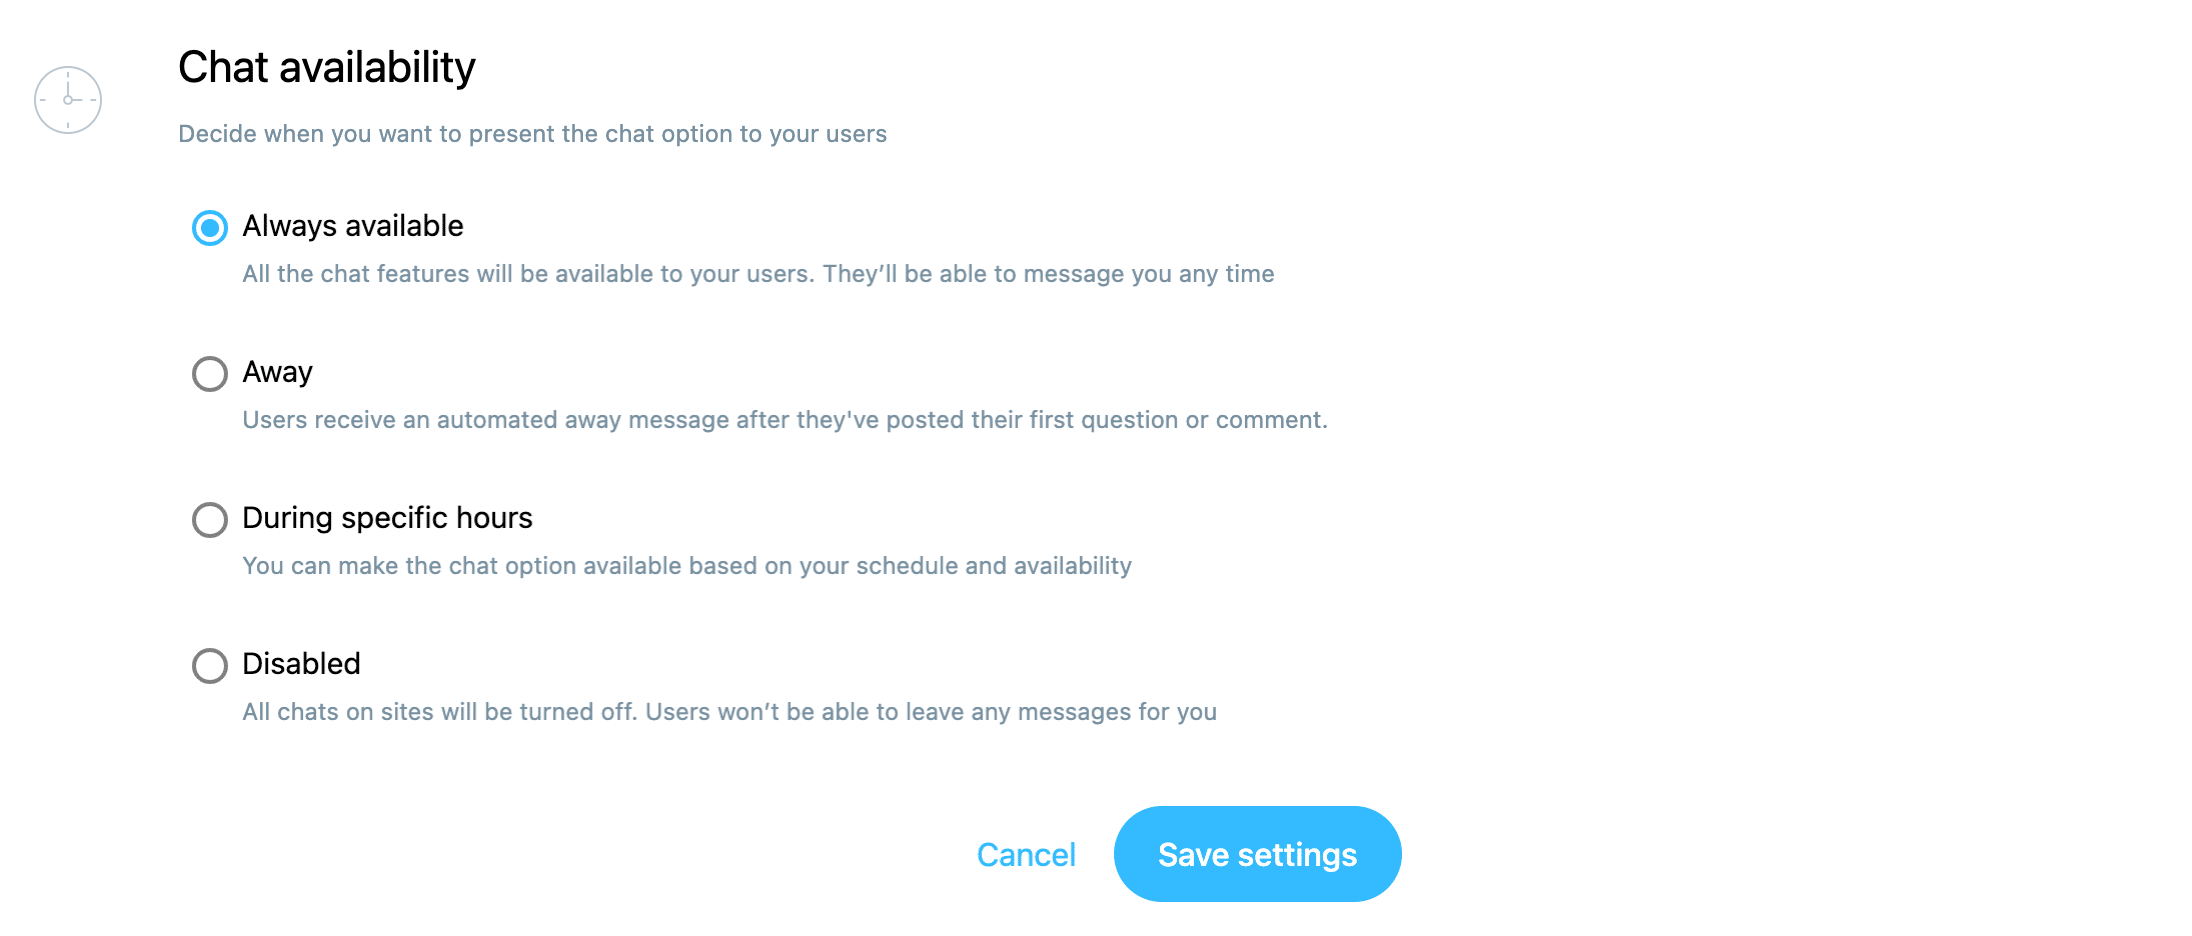 chat-availability-settings